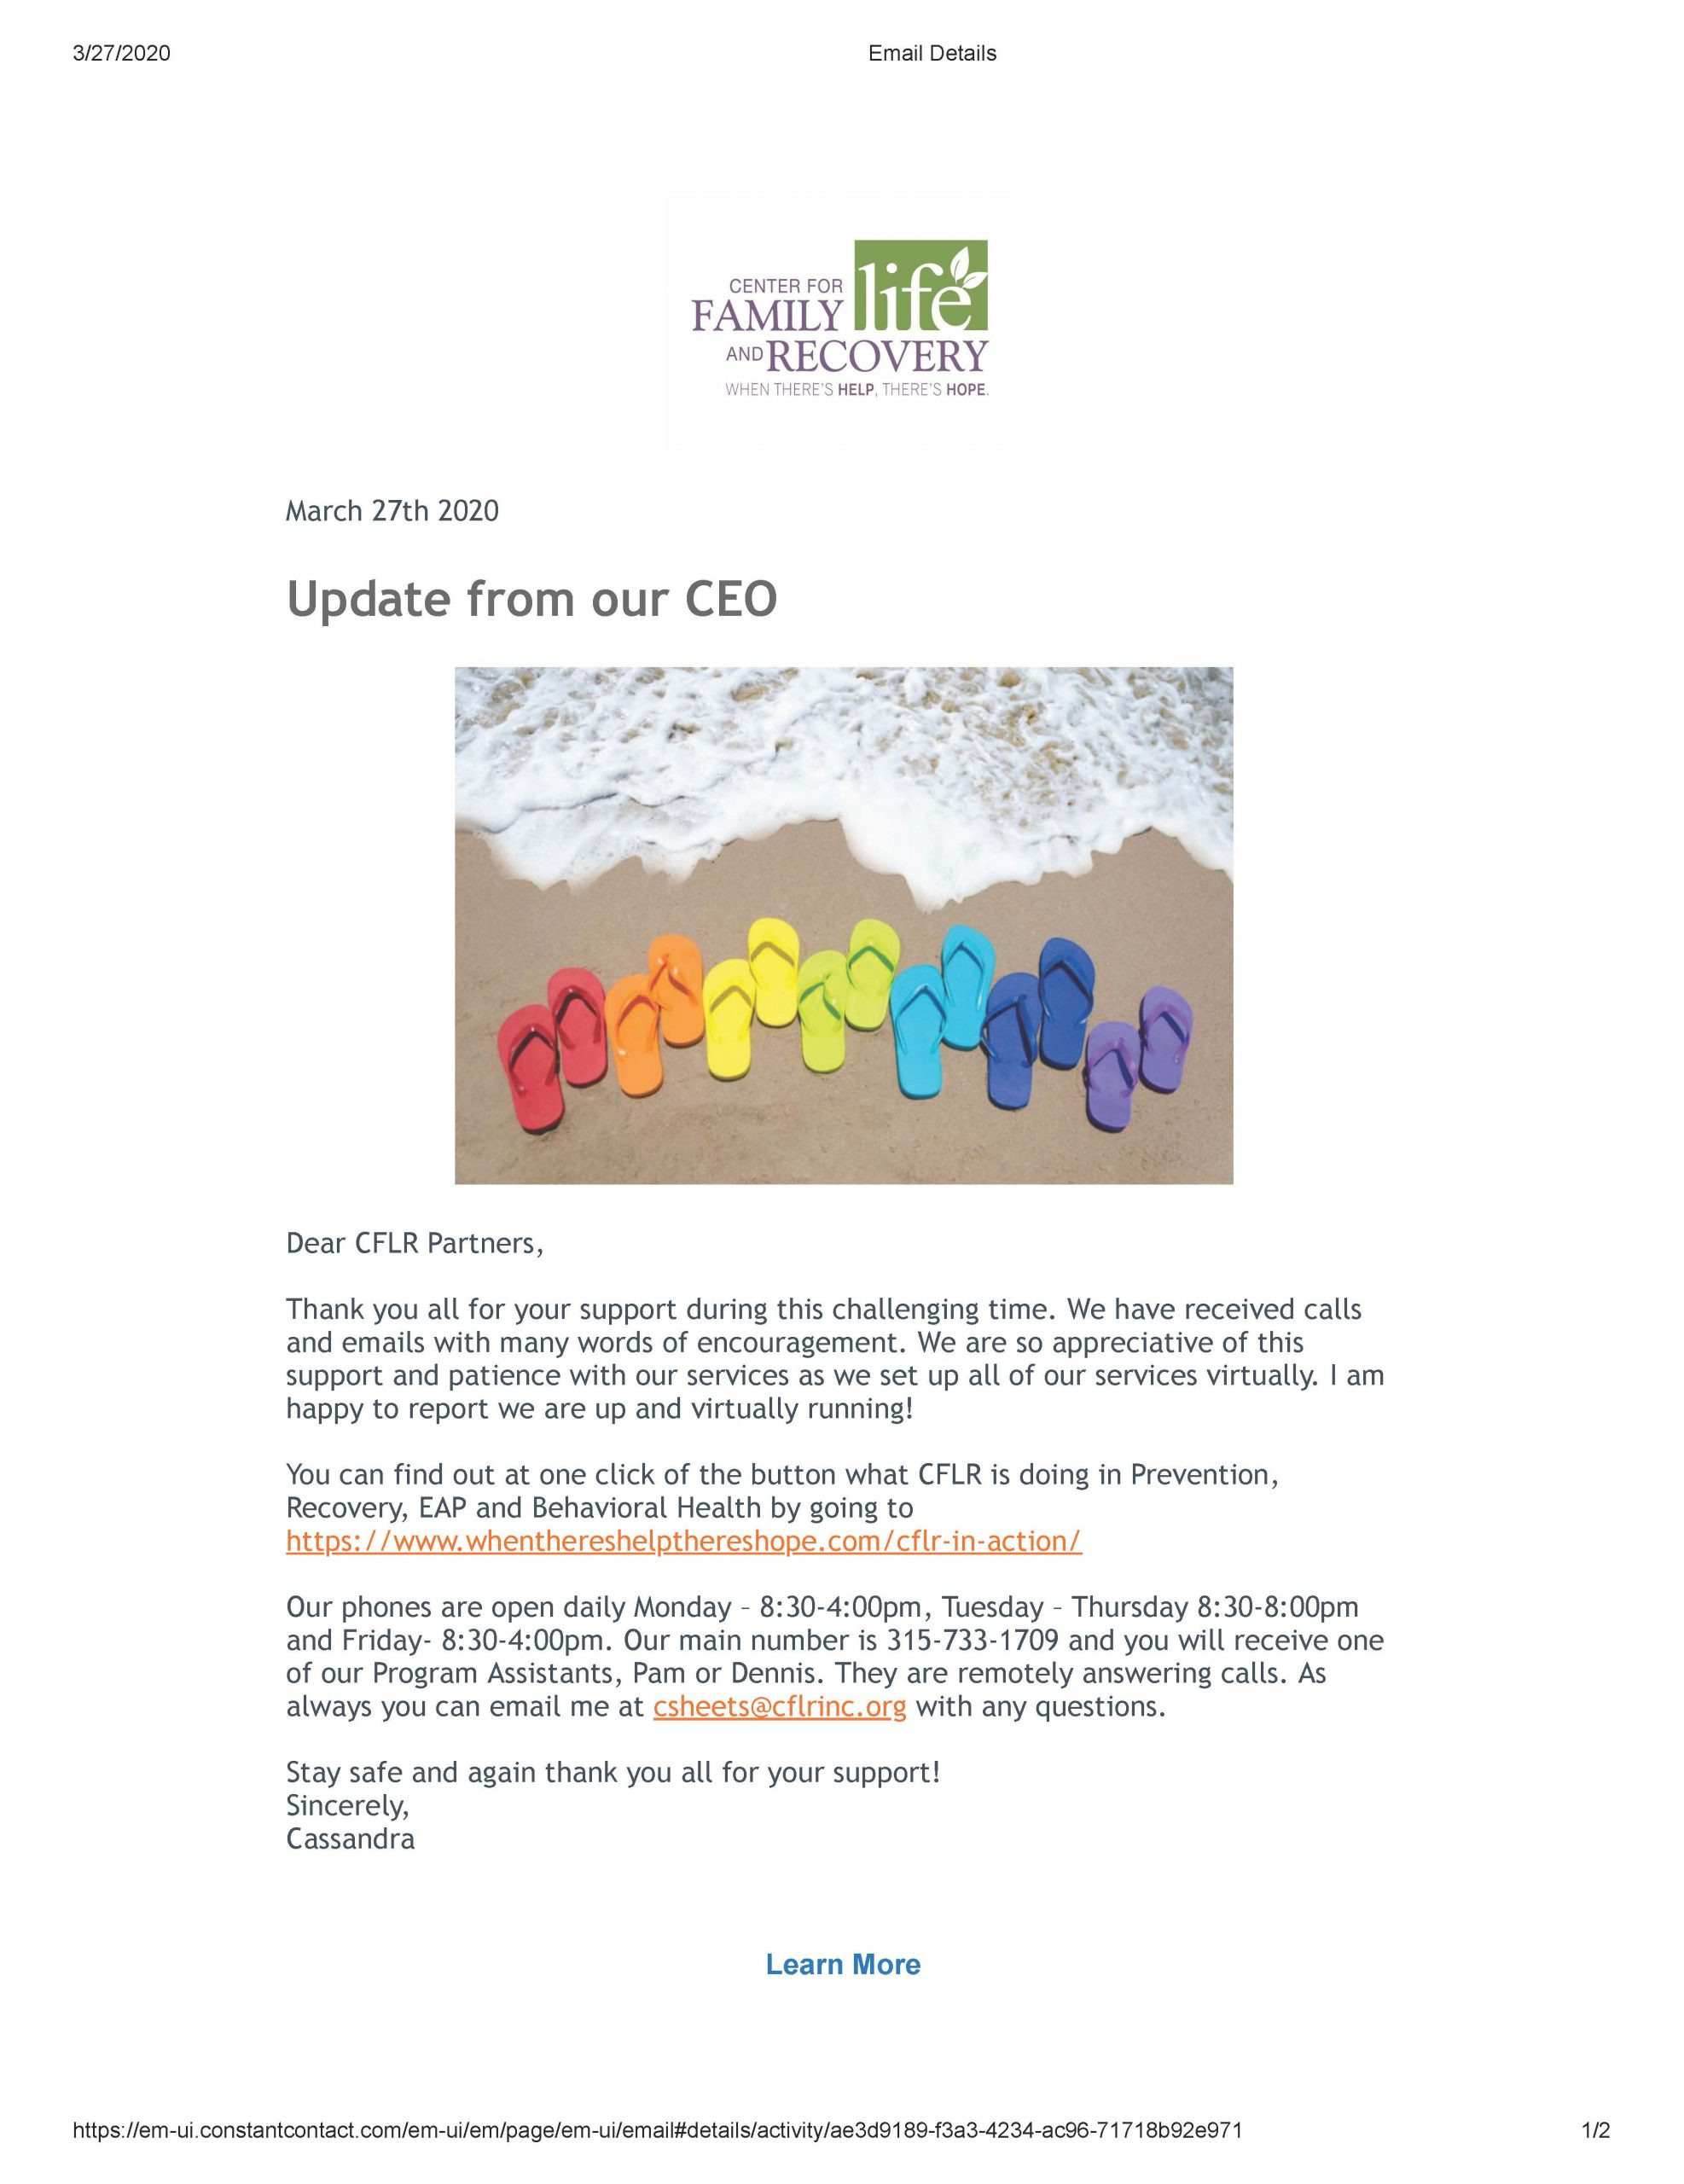 An Update from Our CEO on the COVID-19